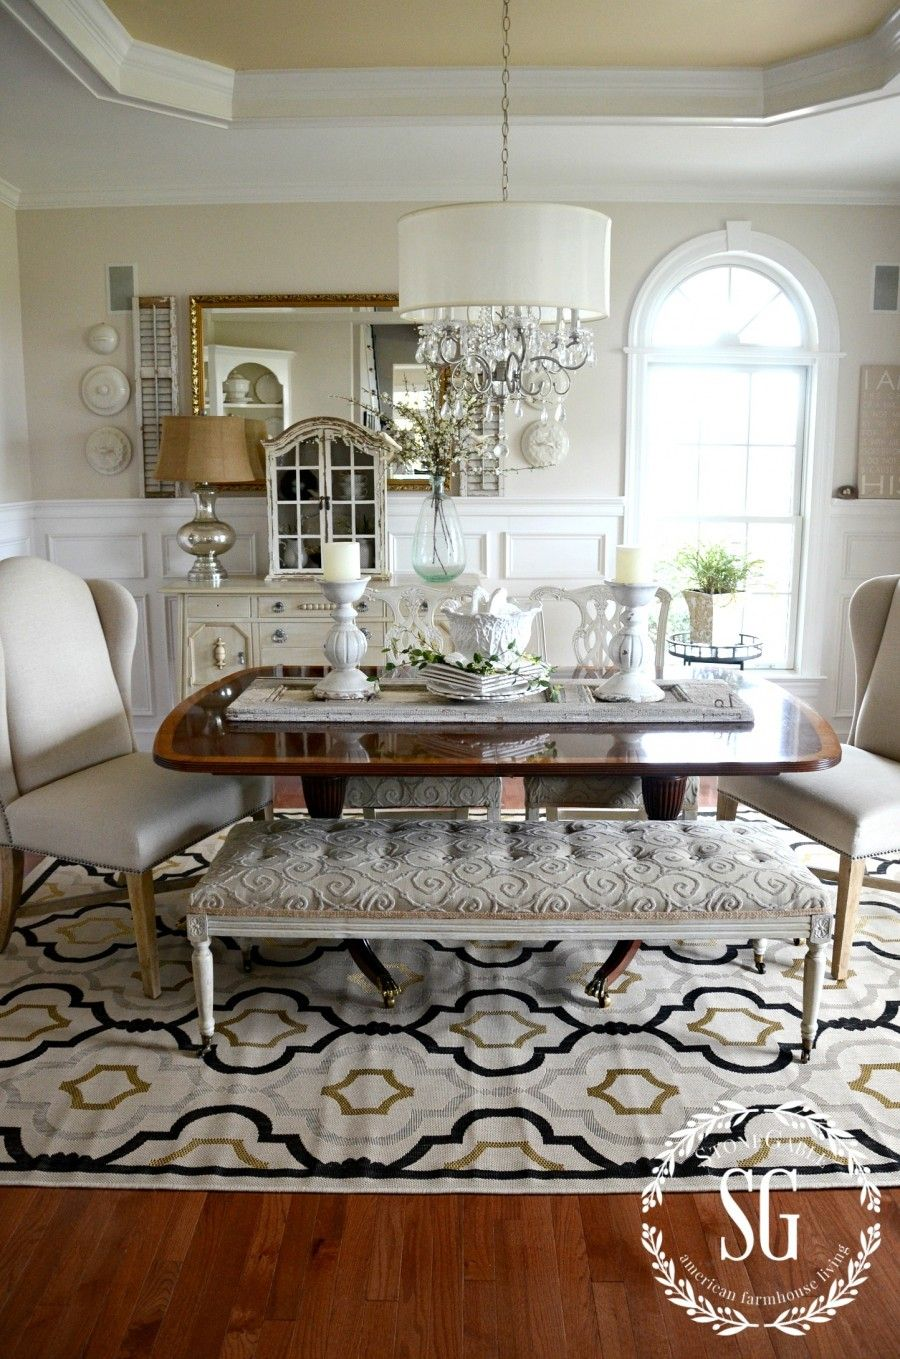 Formal Living Room Decor: 5 RULES FOR CHOOSING THE PERFECT DINING ROOM RUG